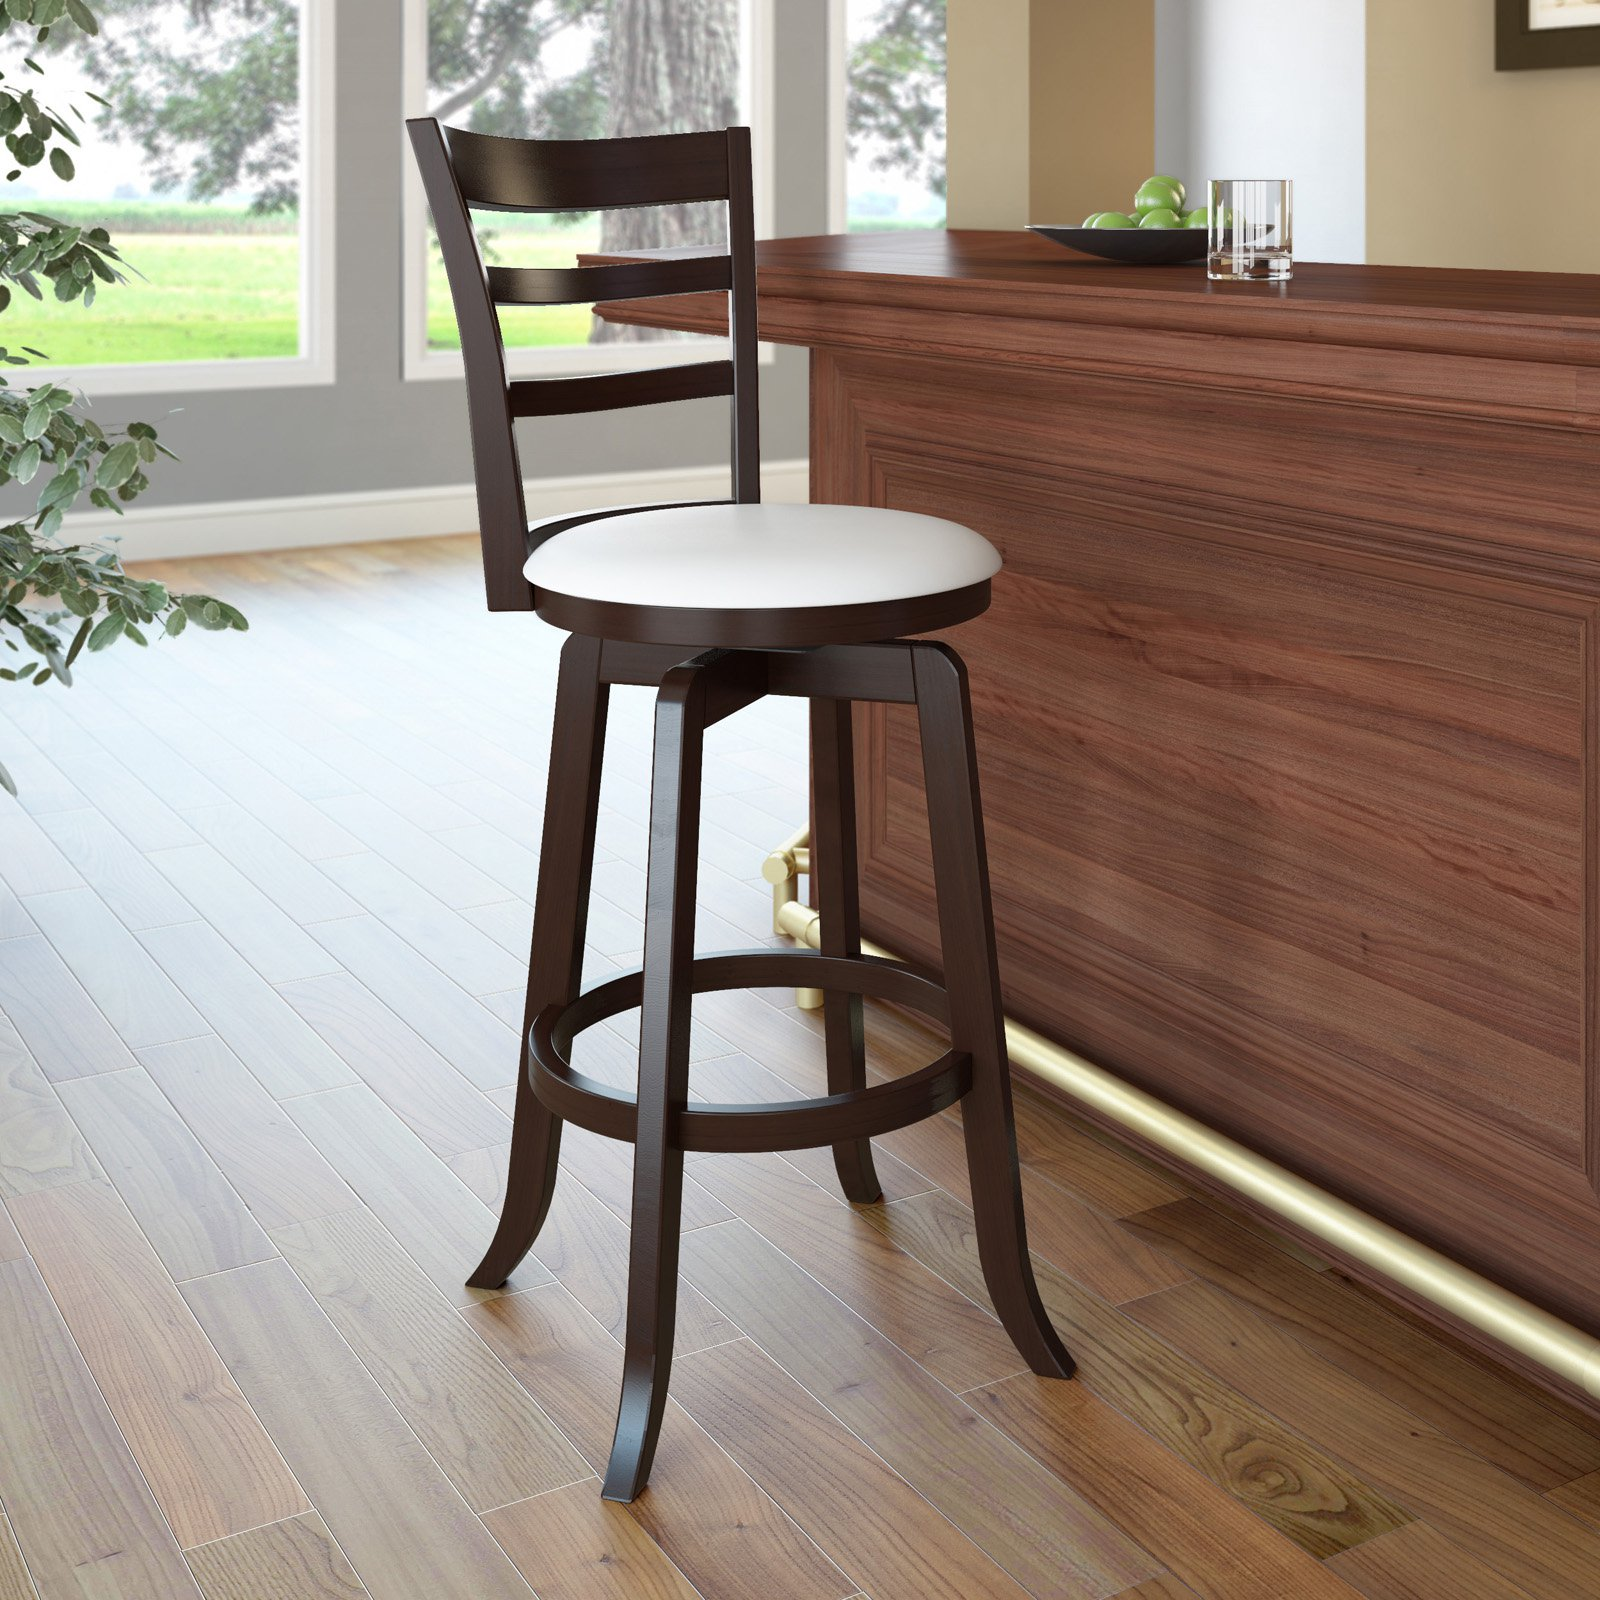 CorLiving Woodgrove Three Bar Design 29 in. Wood Bar Stool in Espresso and White Leatherette